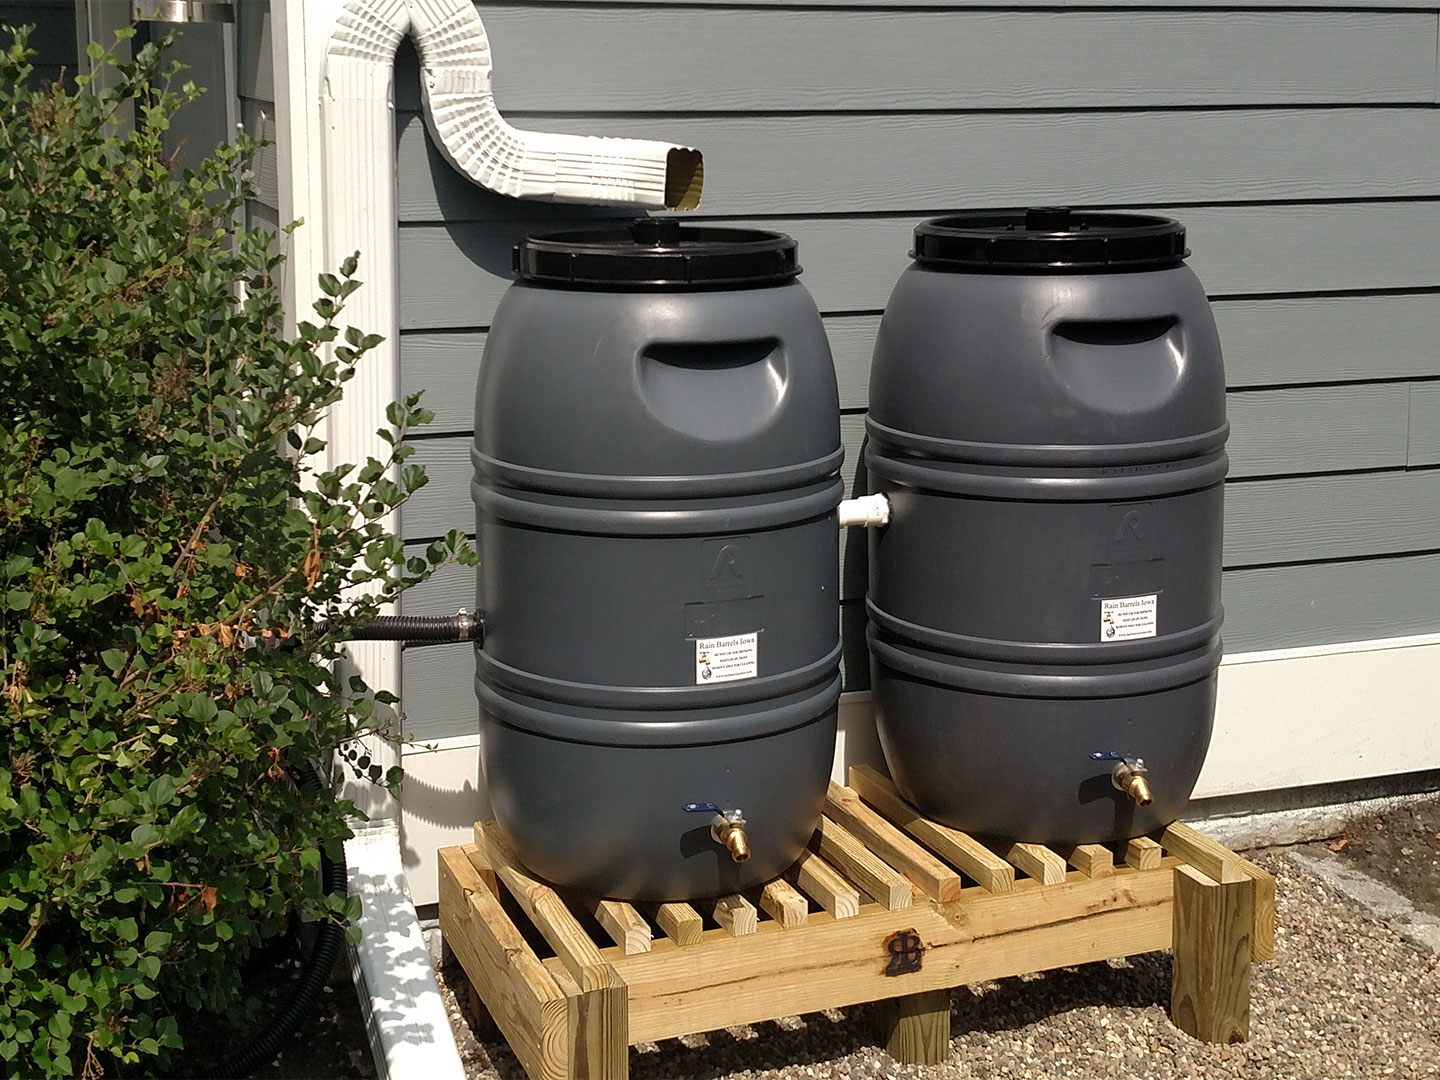 Rain Barrels Iowa offers complete rain harvesting solutions, from 55 to 5,000 gallons of water storage.